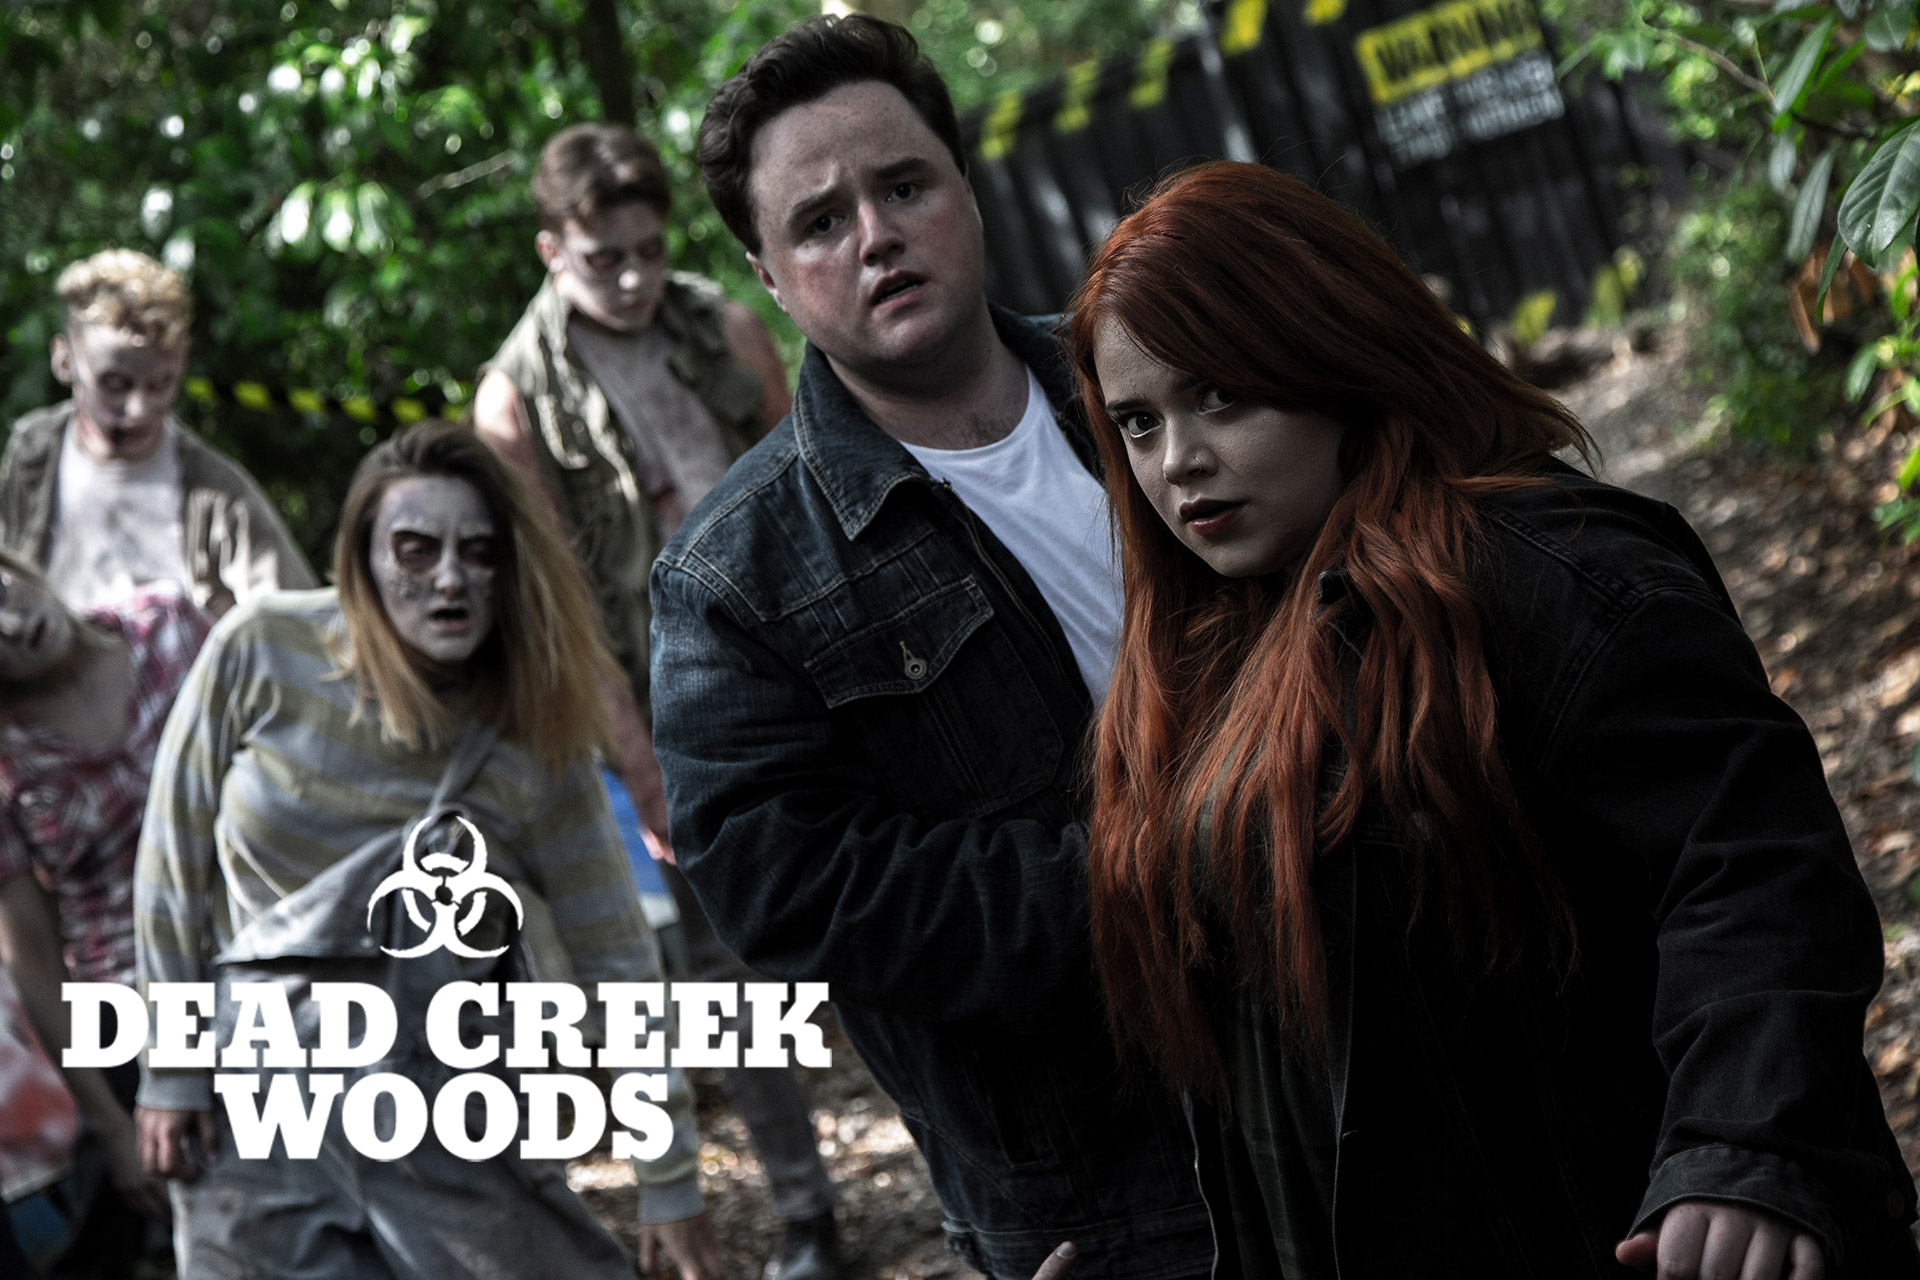 Dead Creek Woods has joined the Thorpe Park Fright Nights 2018 Line-Up!